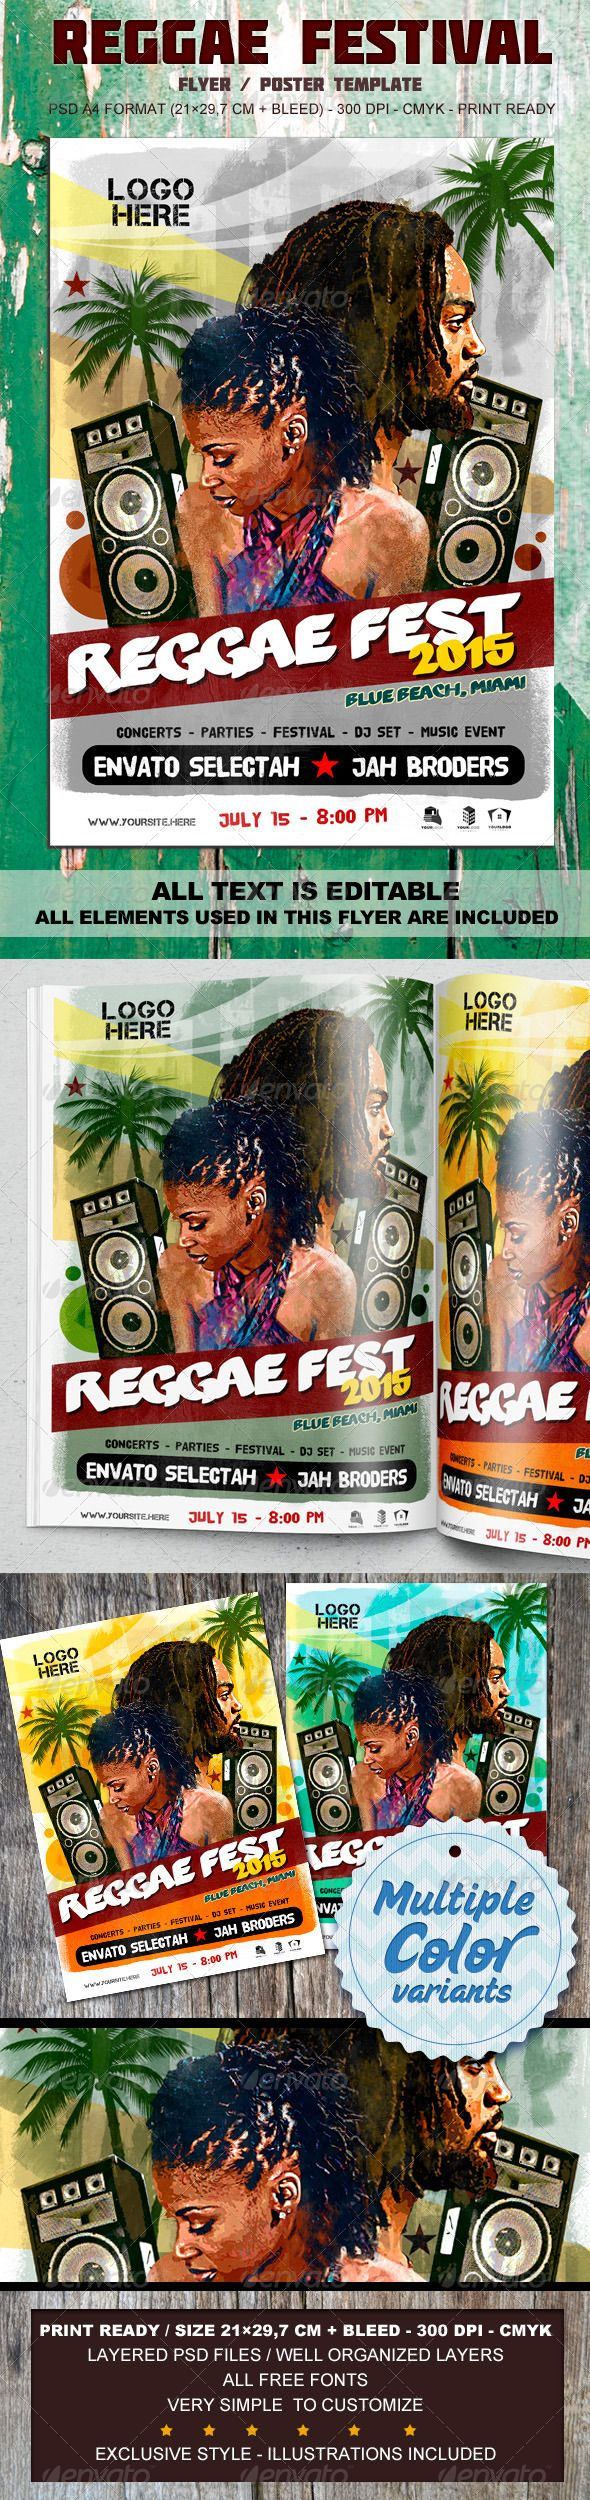 Reggae Festival Flyer & Poster - A4 PSD Template   http://graphicriver.net/item/reggae-festival-flyer-poster-a4-psd-template/8466717?ref=damiamio       This flyer was designed to promote a Reggae Music and afro event, such as a gig, concert, festival, dj set, party or weekly event in a music club and other kind of special evenings. Easy to customize and adjust. Illustrations included, fully layered!  	 Features -Template Size: A4 (210×297 mm + bleed) -Fully editable + Full layered…